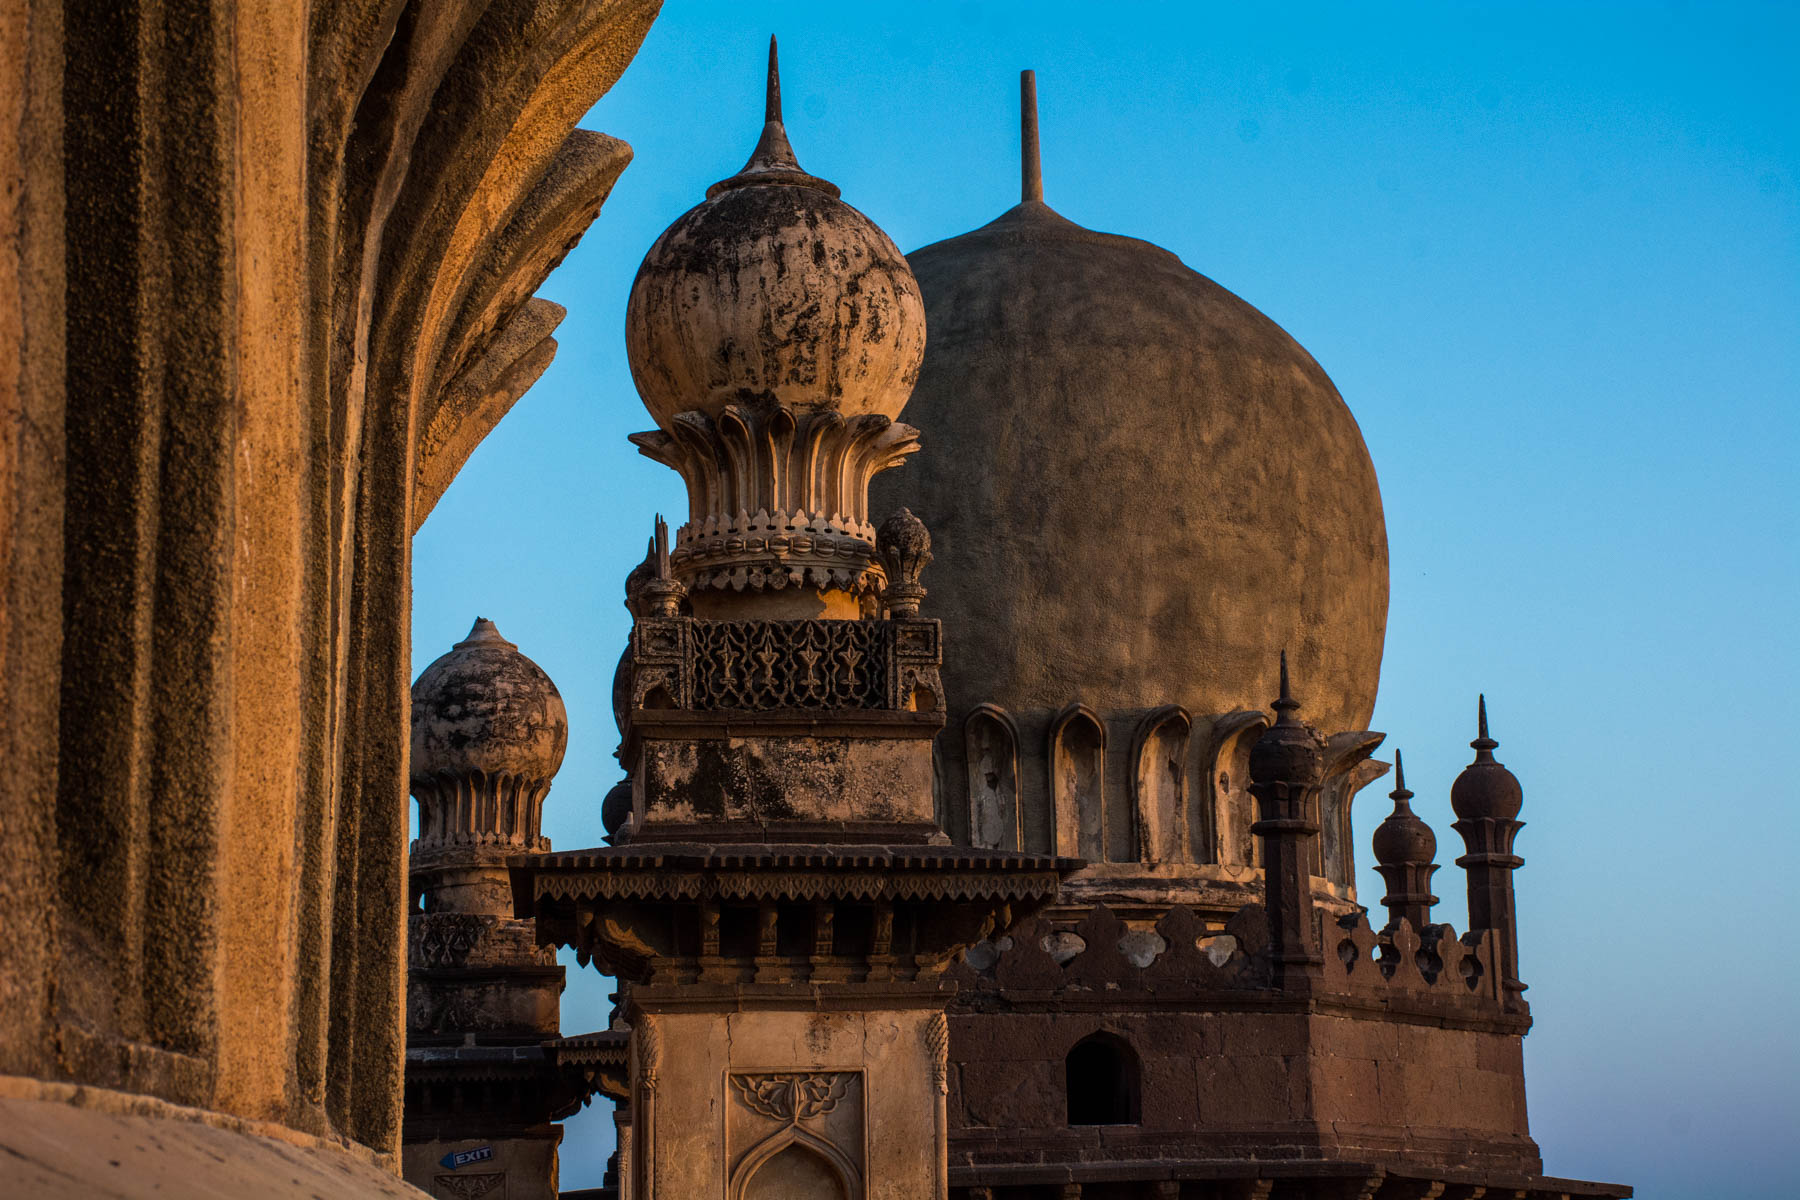 Off the beaten track places to visit in Karnatka, India - the domes of Gol Gumbaz at sunrise in Bijapur, India - Lost With Purpose